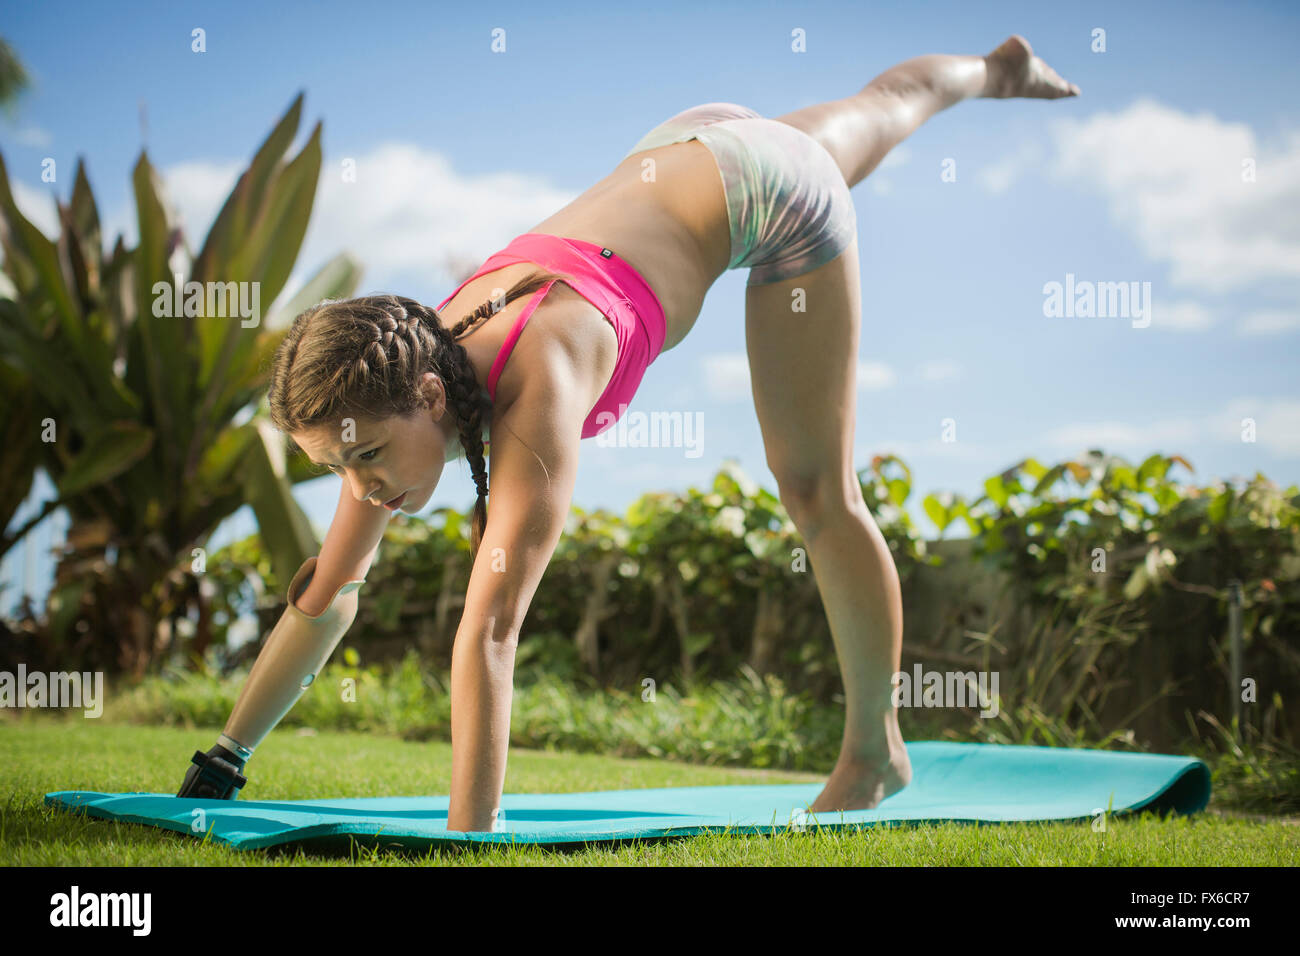 Mixed Race amputee practicing yoga in grass Banque D'Images